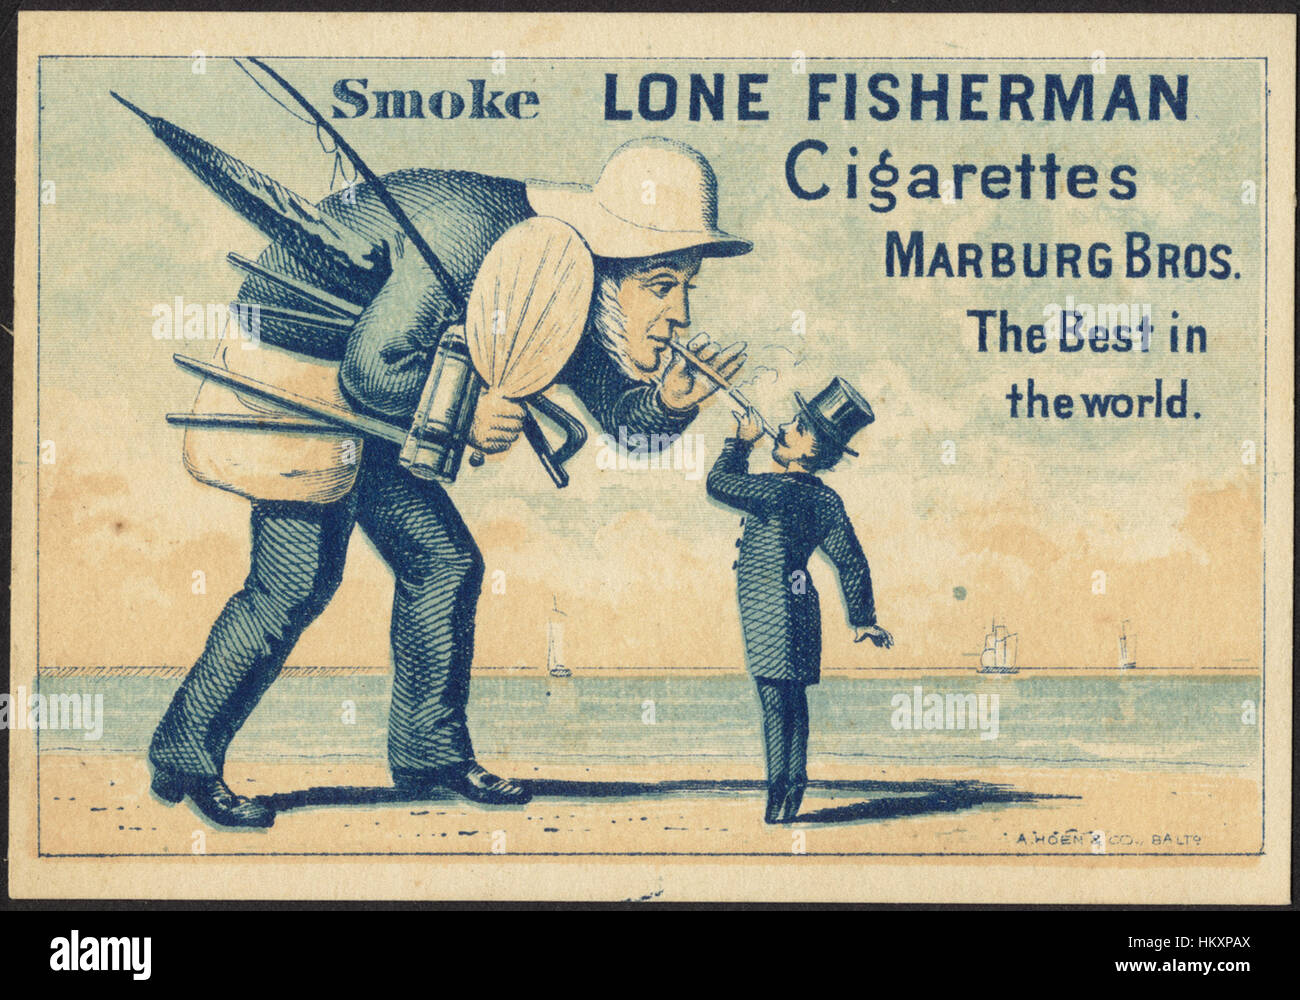 Smoke Lone Fisherman Cigarettes Marburg Bros The Best In The World